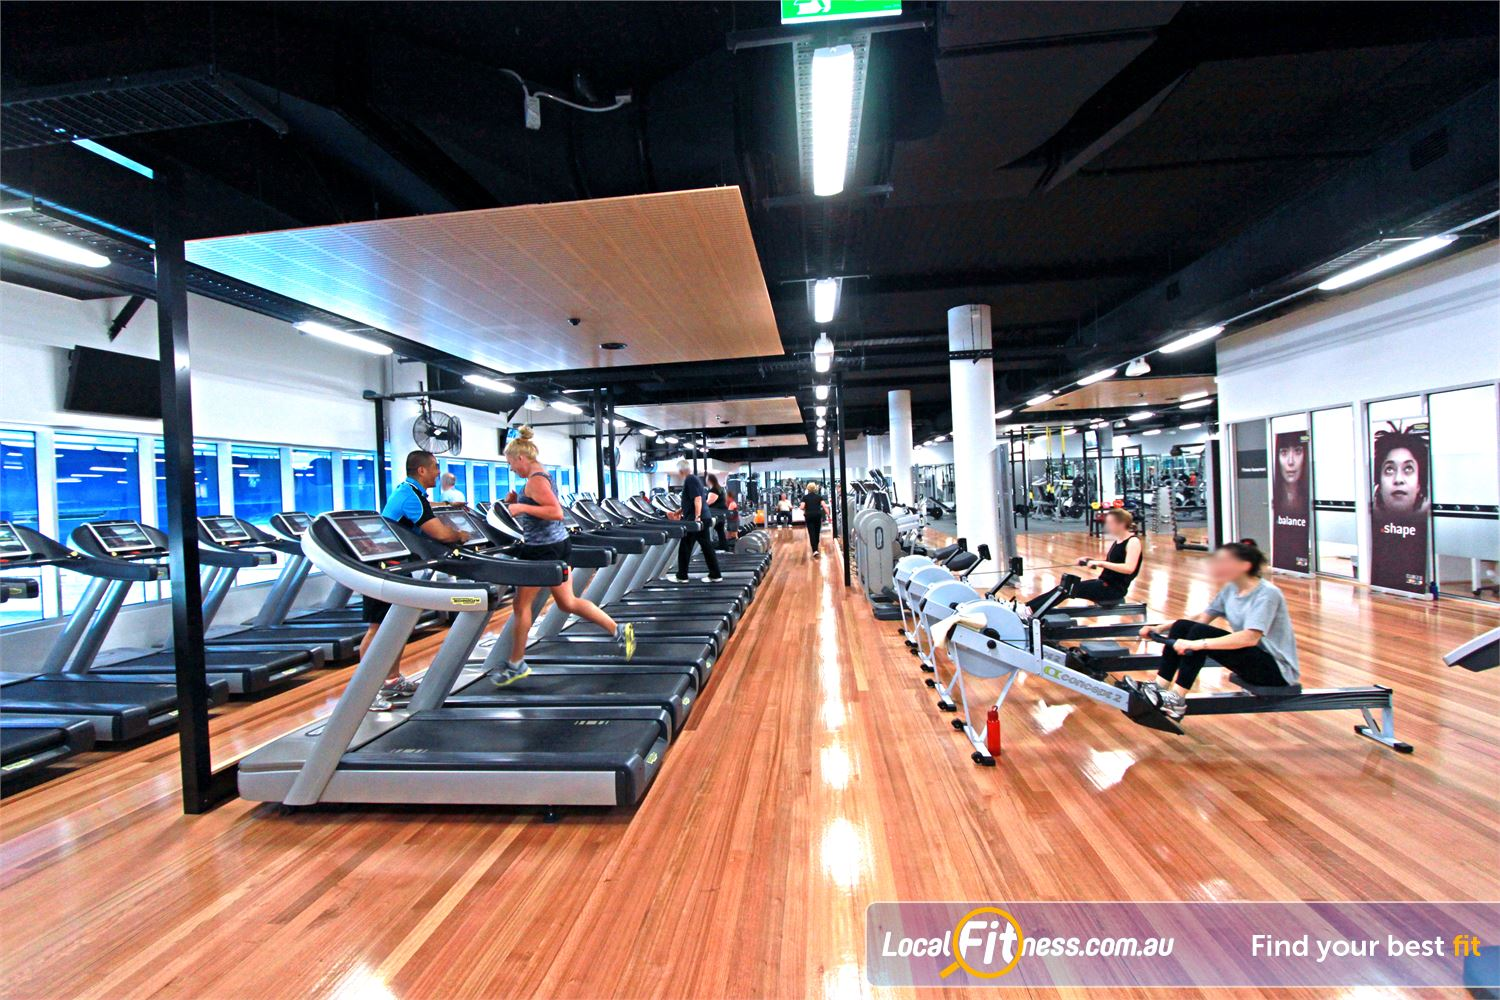 WaterMarc Aquatic & Leisure Centre Near Eltham North The 850 sq/m Greensborough gym inc. treadmills, cycle bikes, cross-trainers and more.